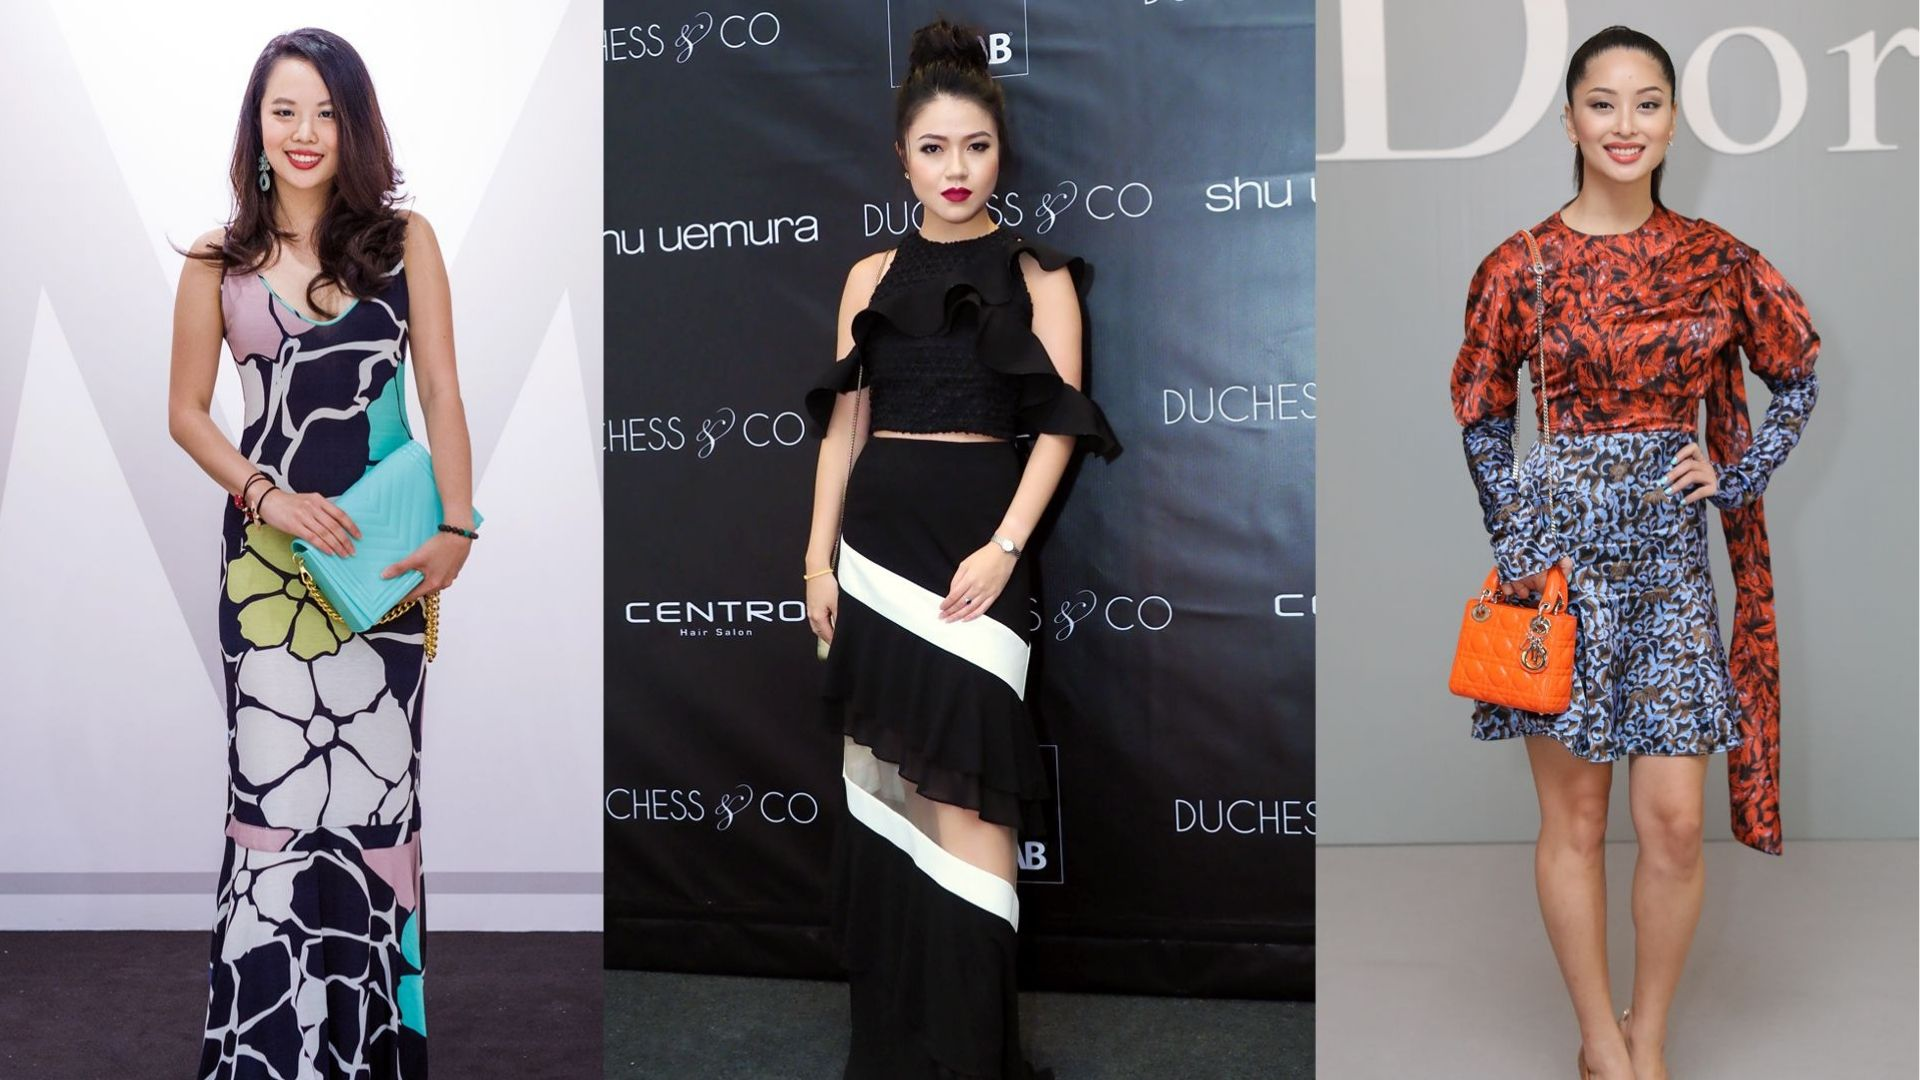 What's An Embarrassing CNY Fashion Faux Pas? These 3 Power Dressers Tell All